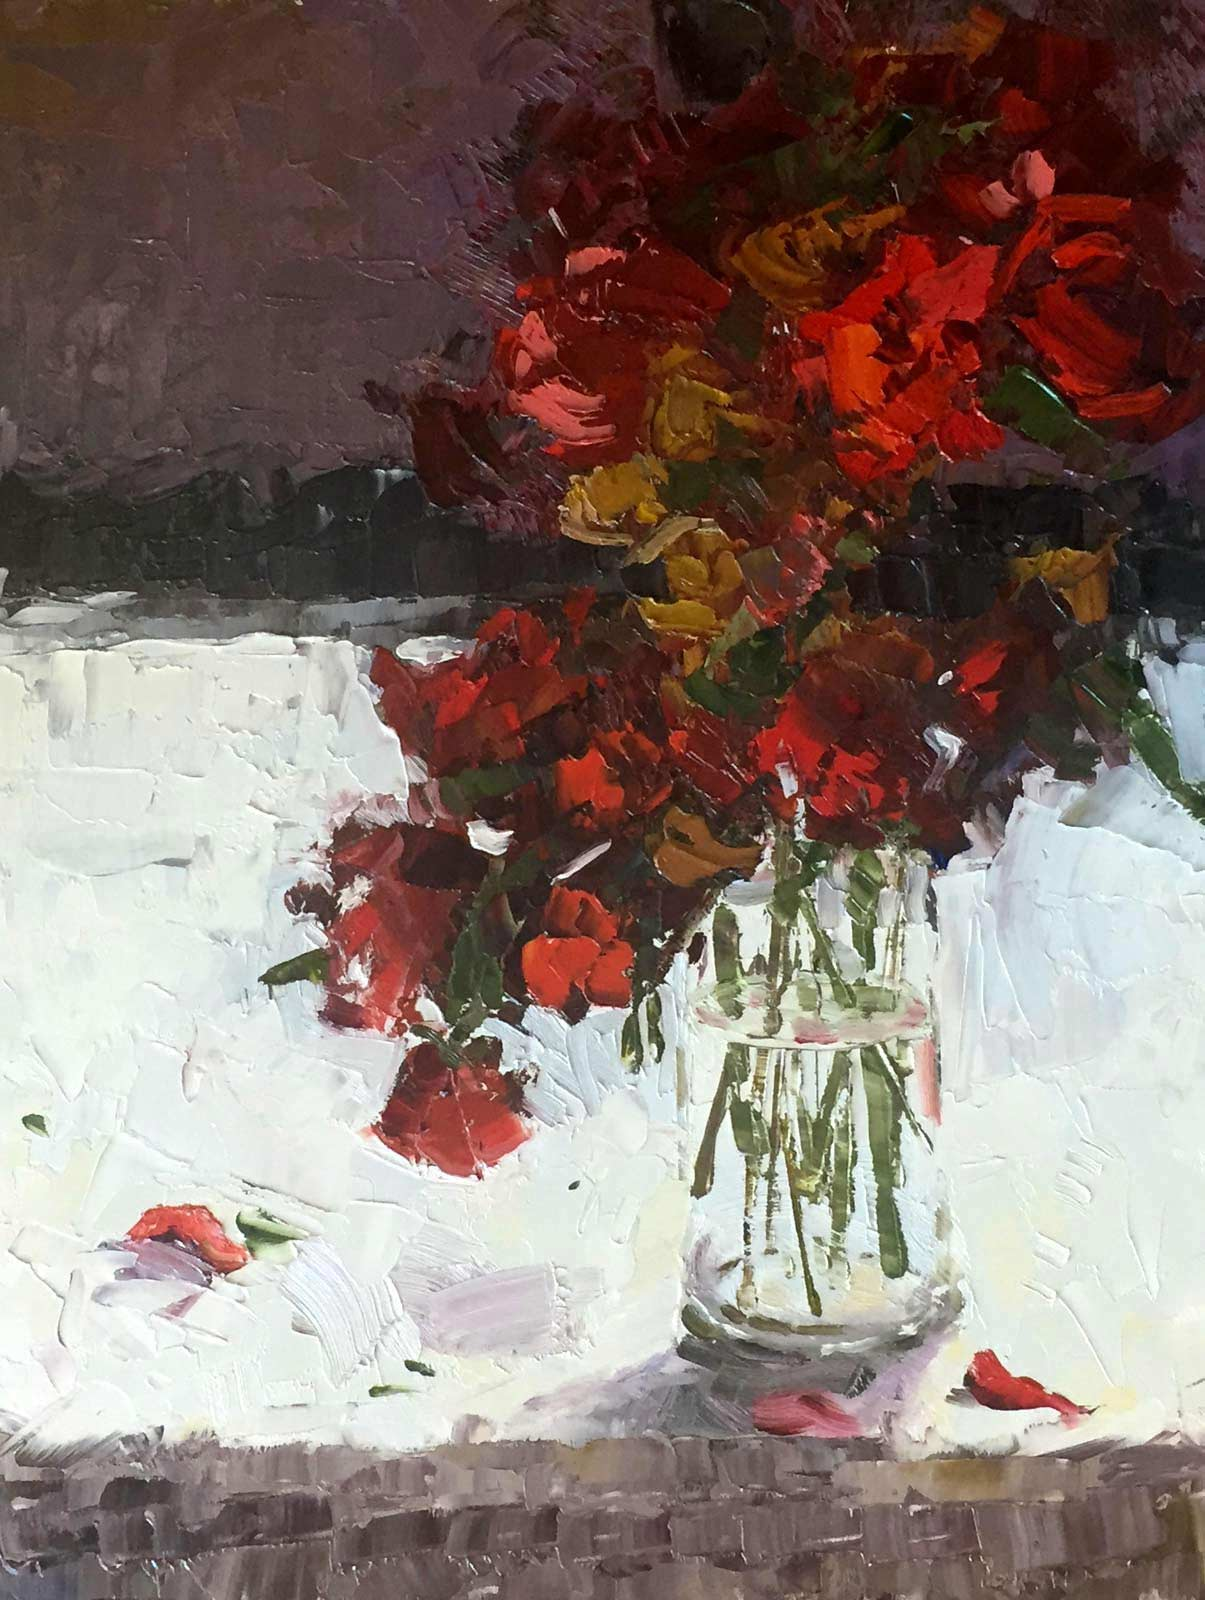 An original oil painting of a bouquet of vibrant red flowers with fallen petals.